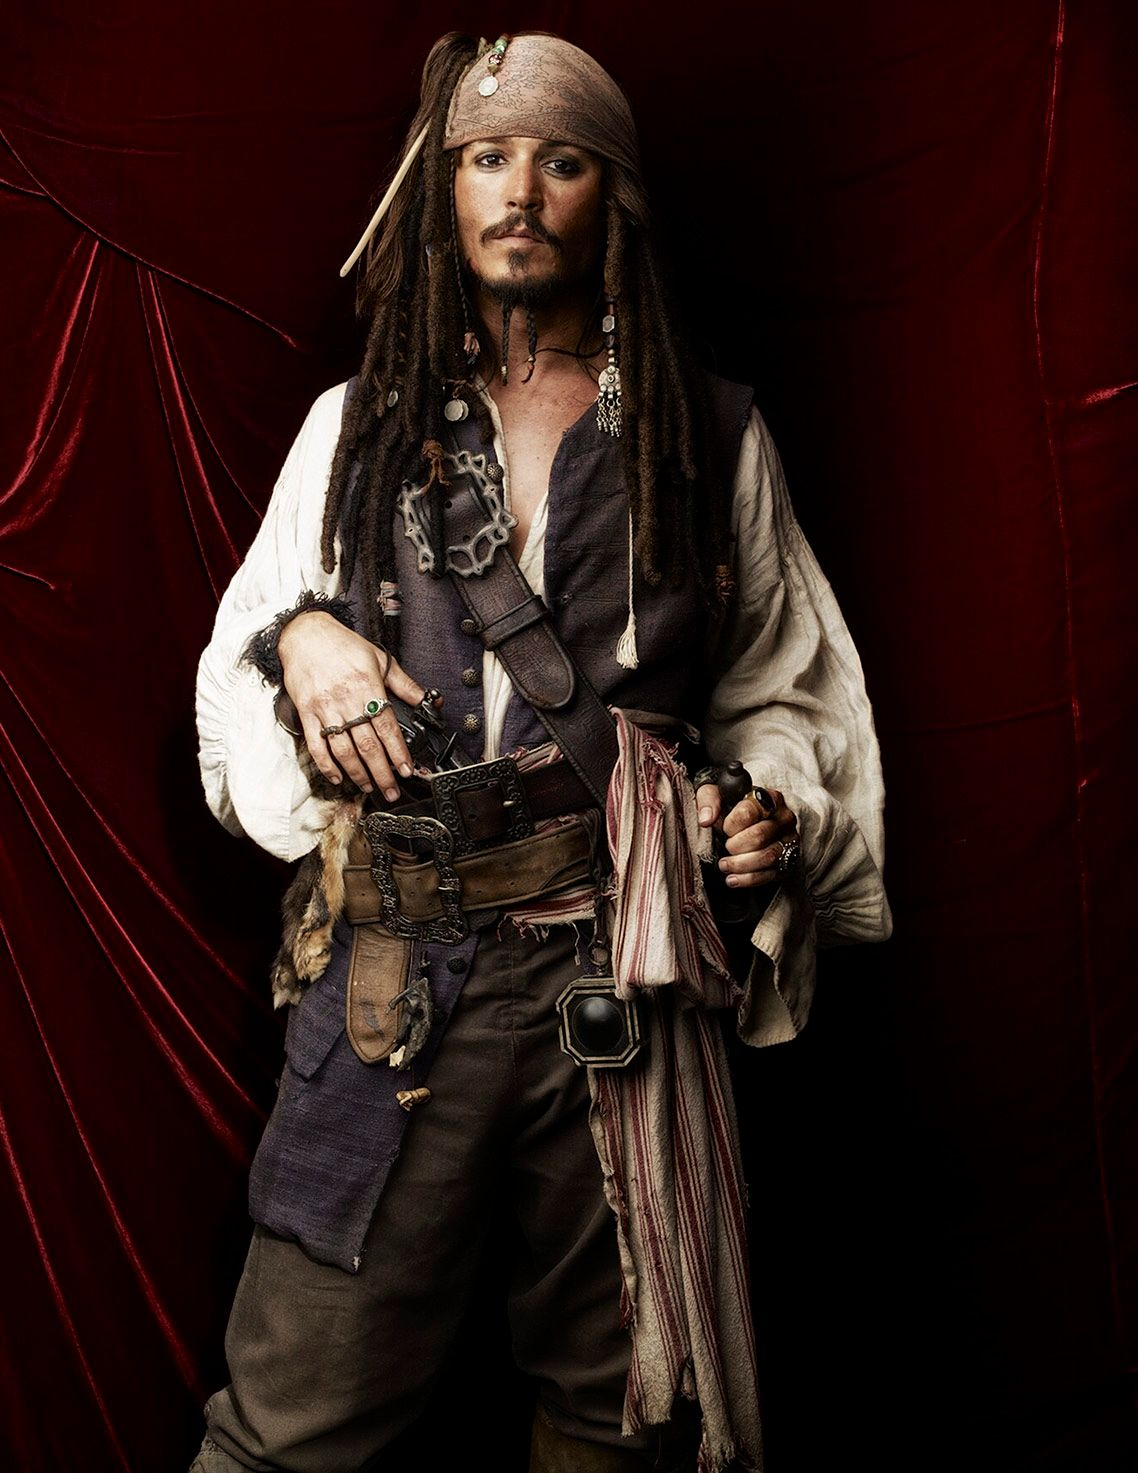 JOHNNY DEPP • PIRATES OF THE CARIBBEAN • AT WORLD'S END